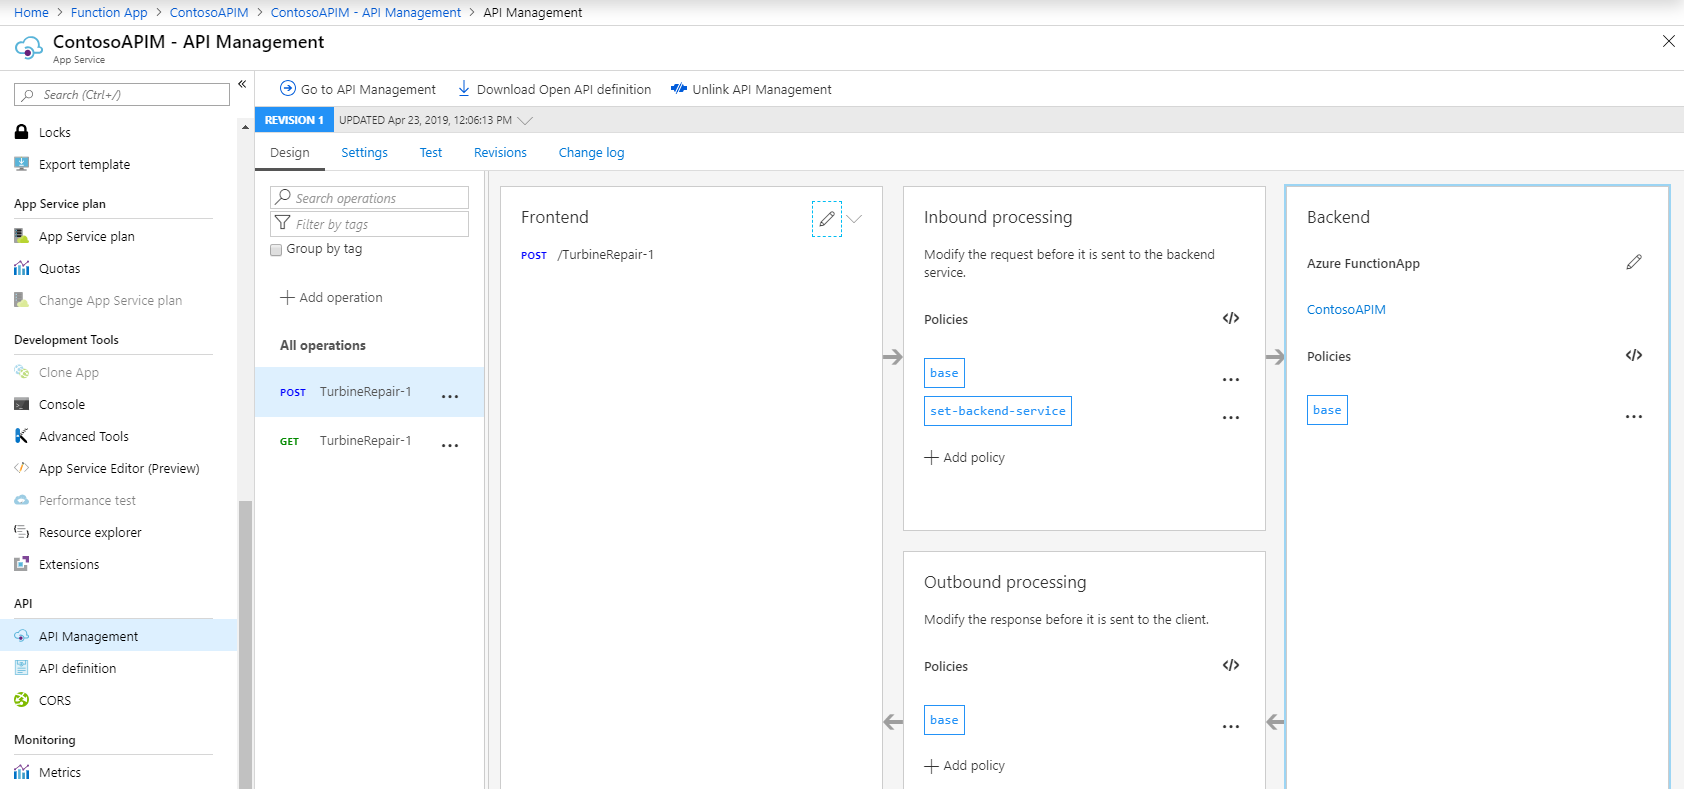 Linking API Management dashboard to Function Apps